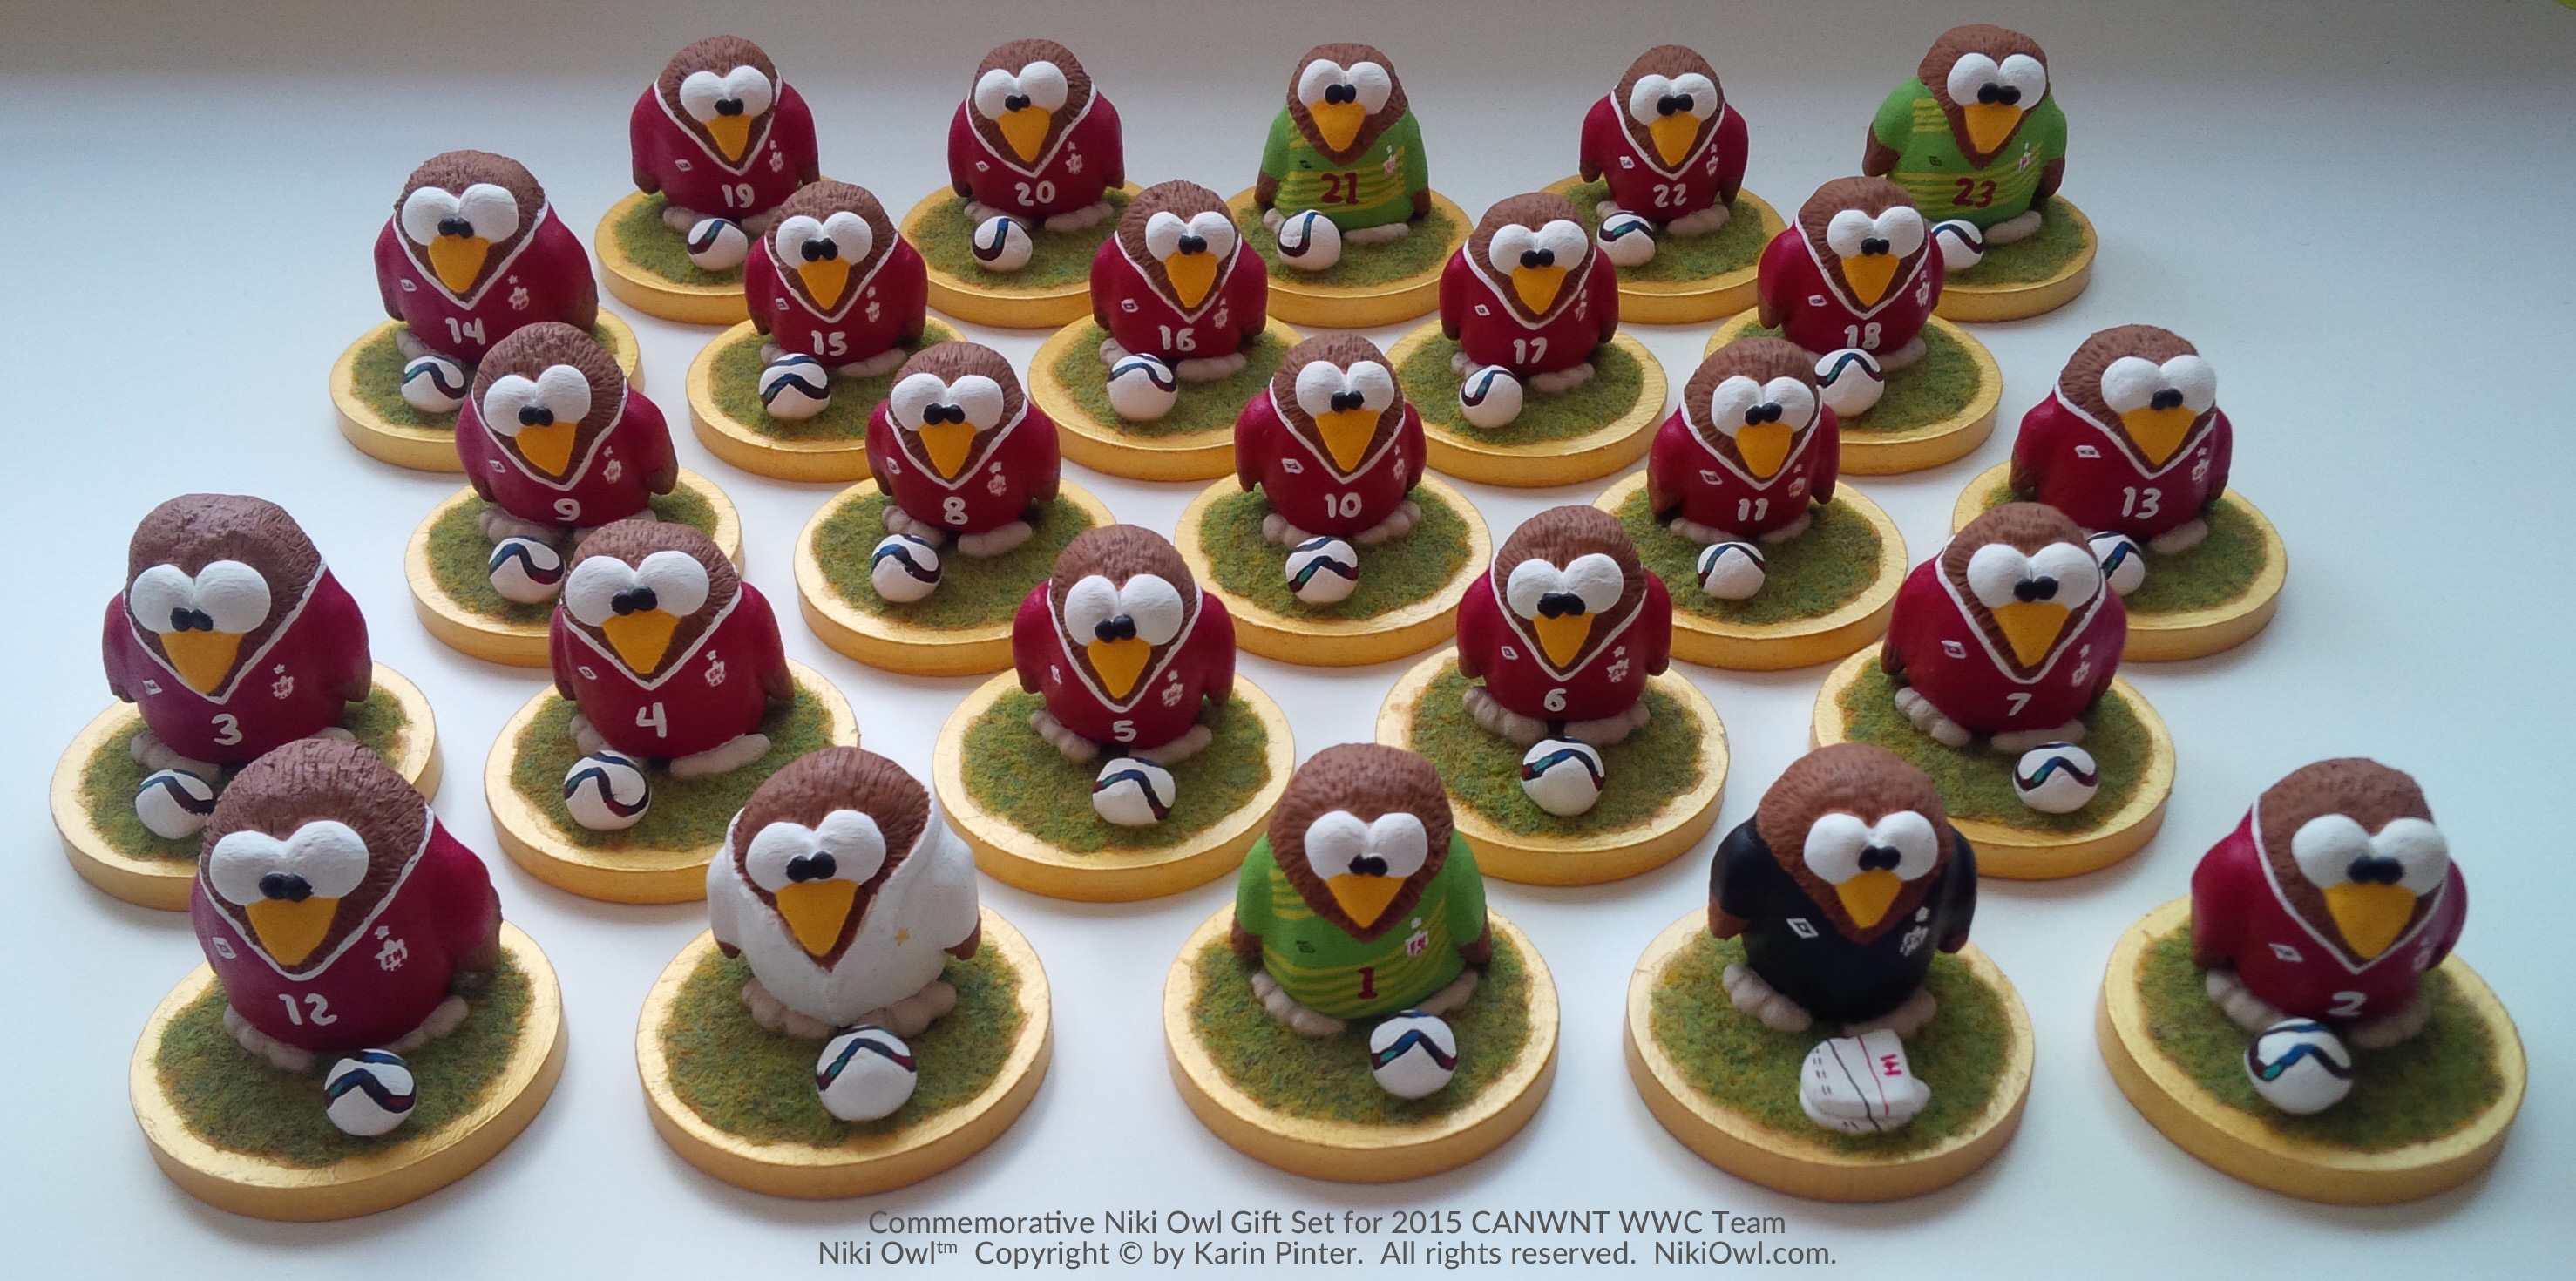 Making the Niki Owl CANWNT Team Gift